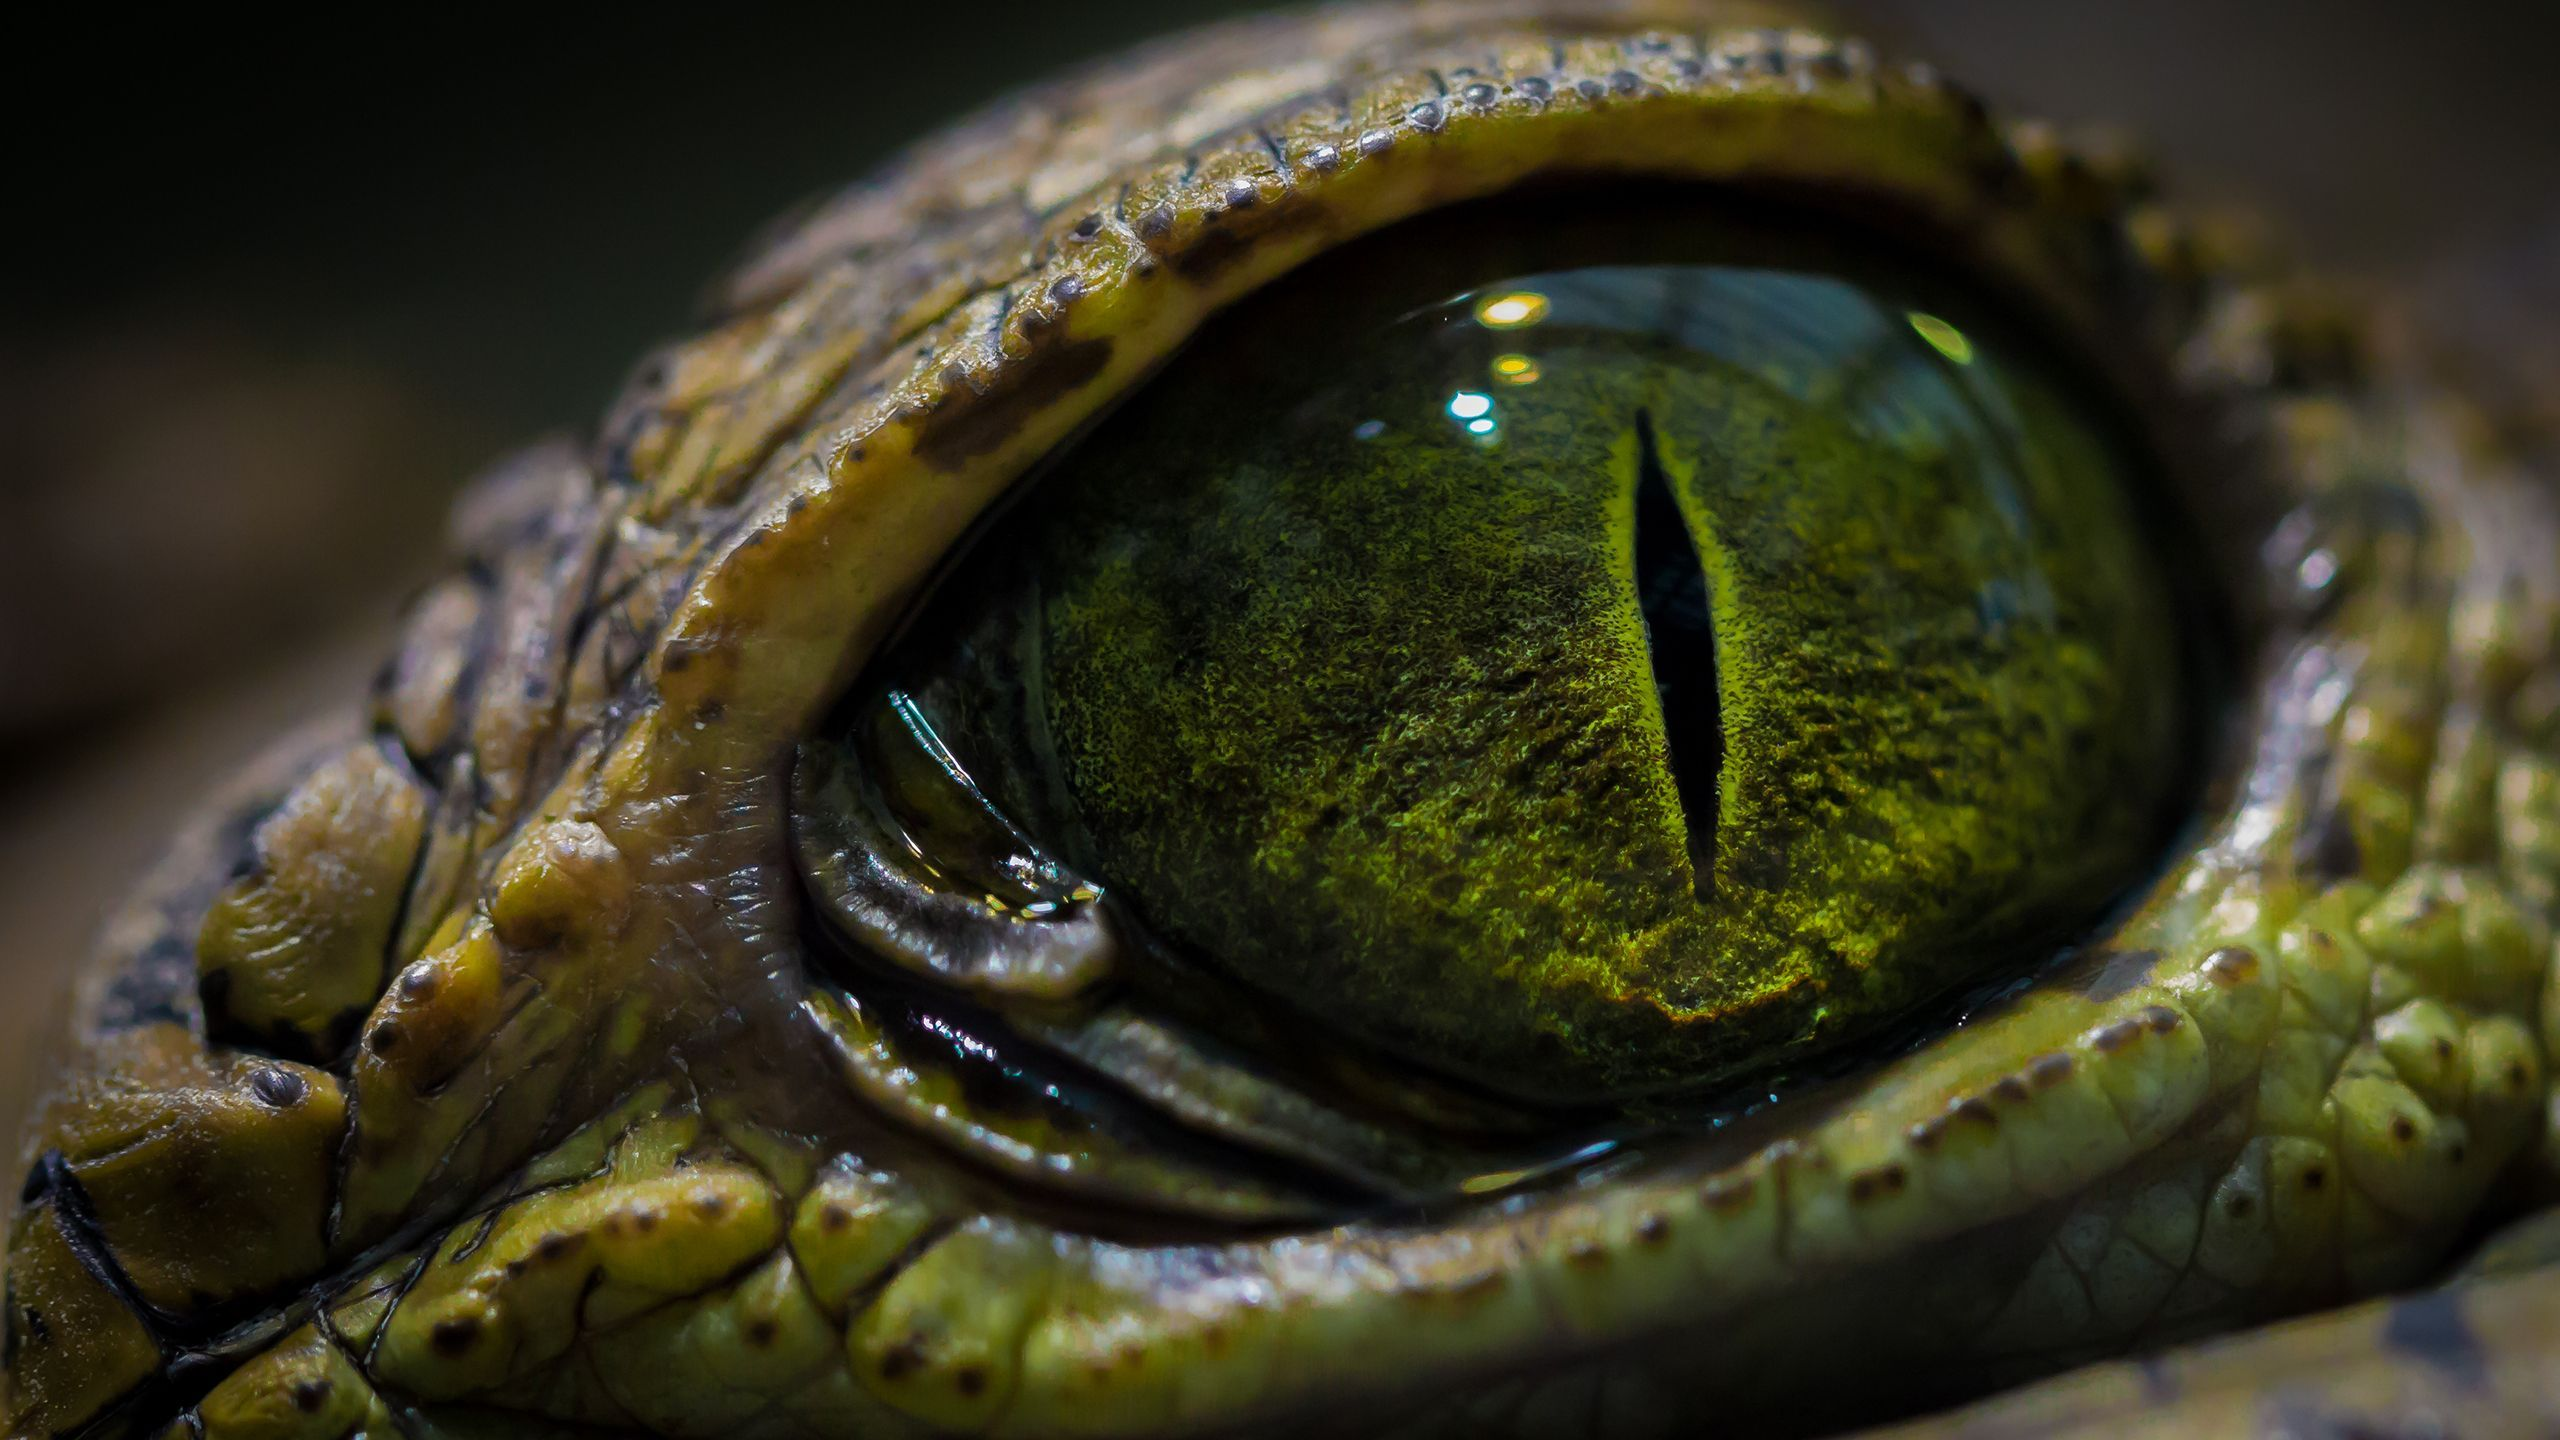 Crocodile eye wallpaper